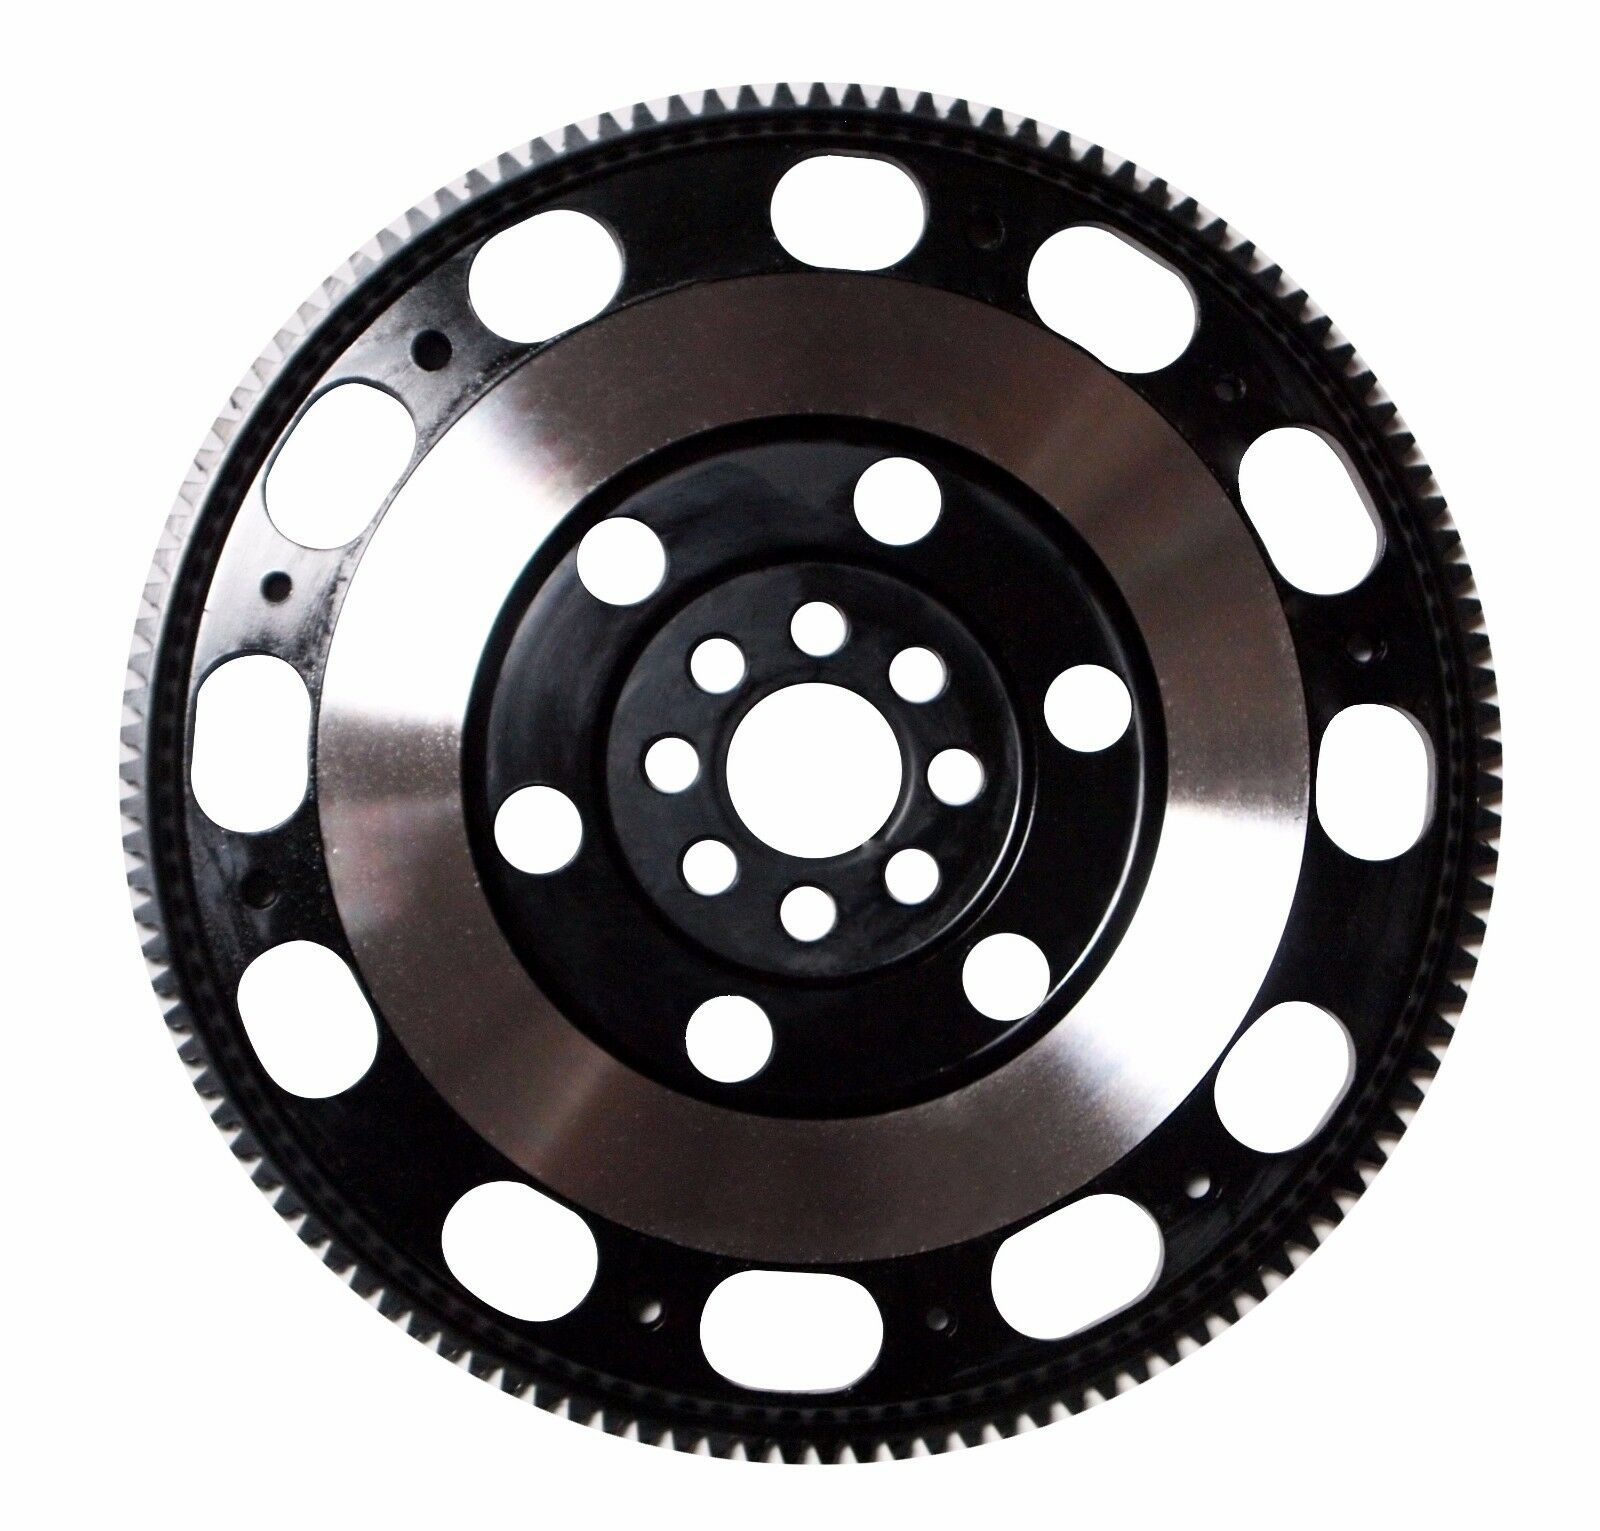 QSC Flywheel fits Acura RSX Type-S Civic SI 2.0L 6 Speed K20A3 K20A2 K20Z1